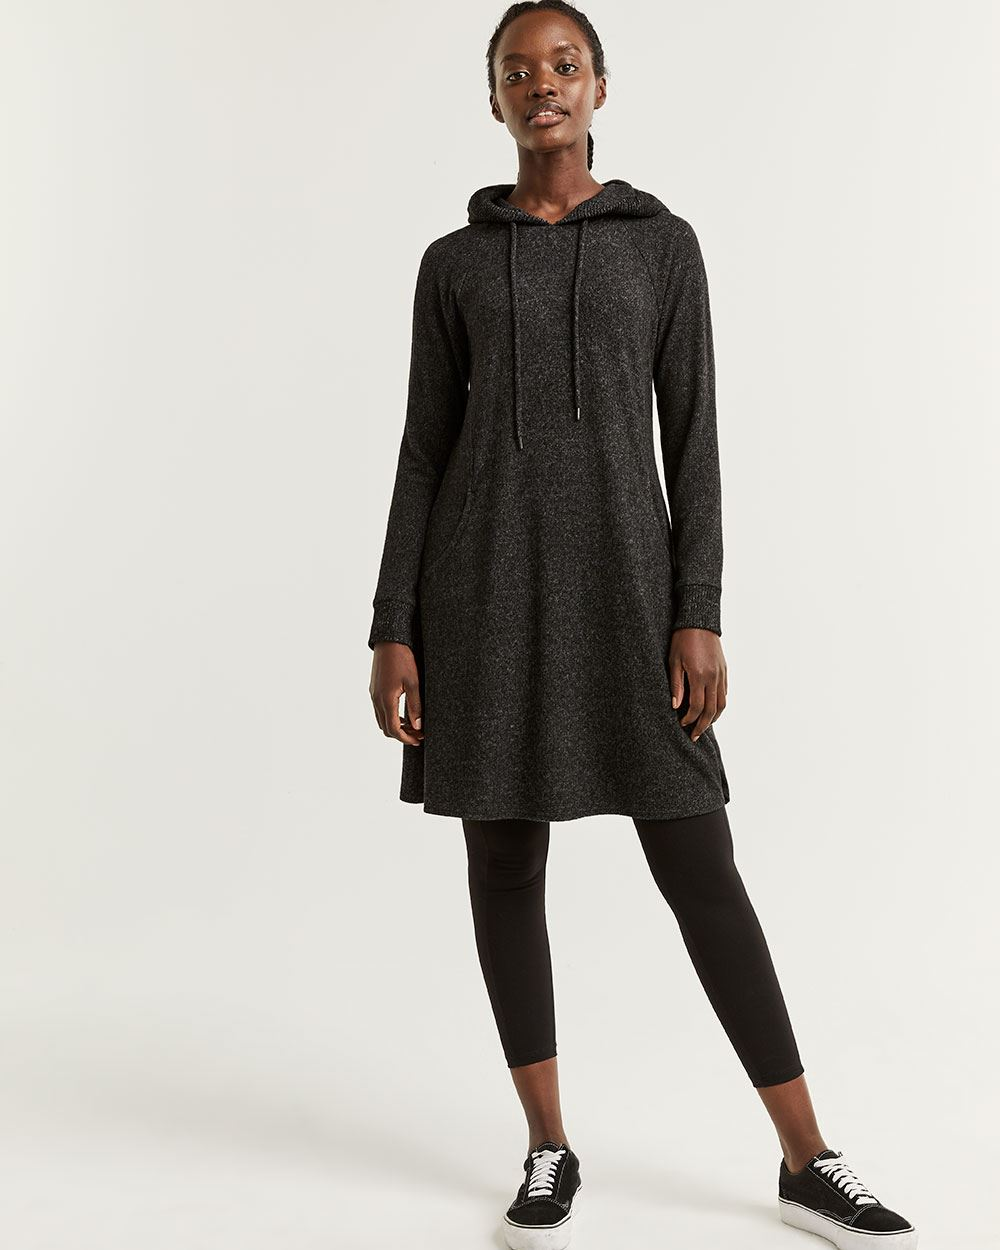 Hyba Brushed Knit A-Line Dress with Hood